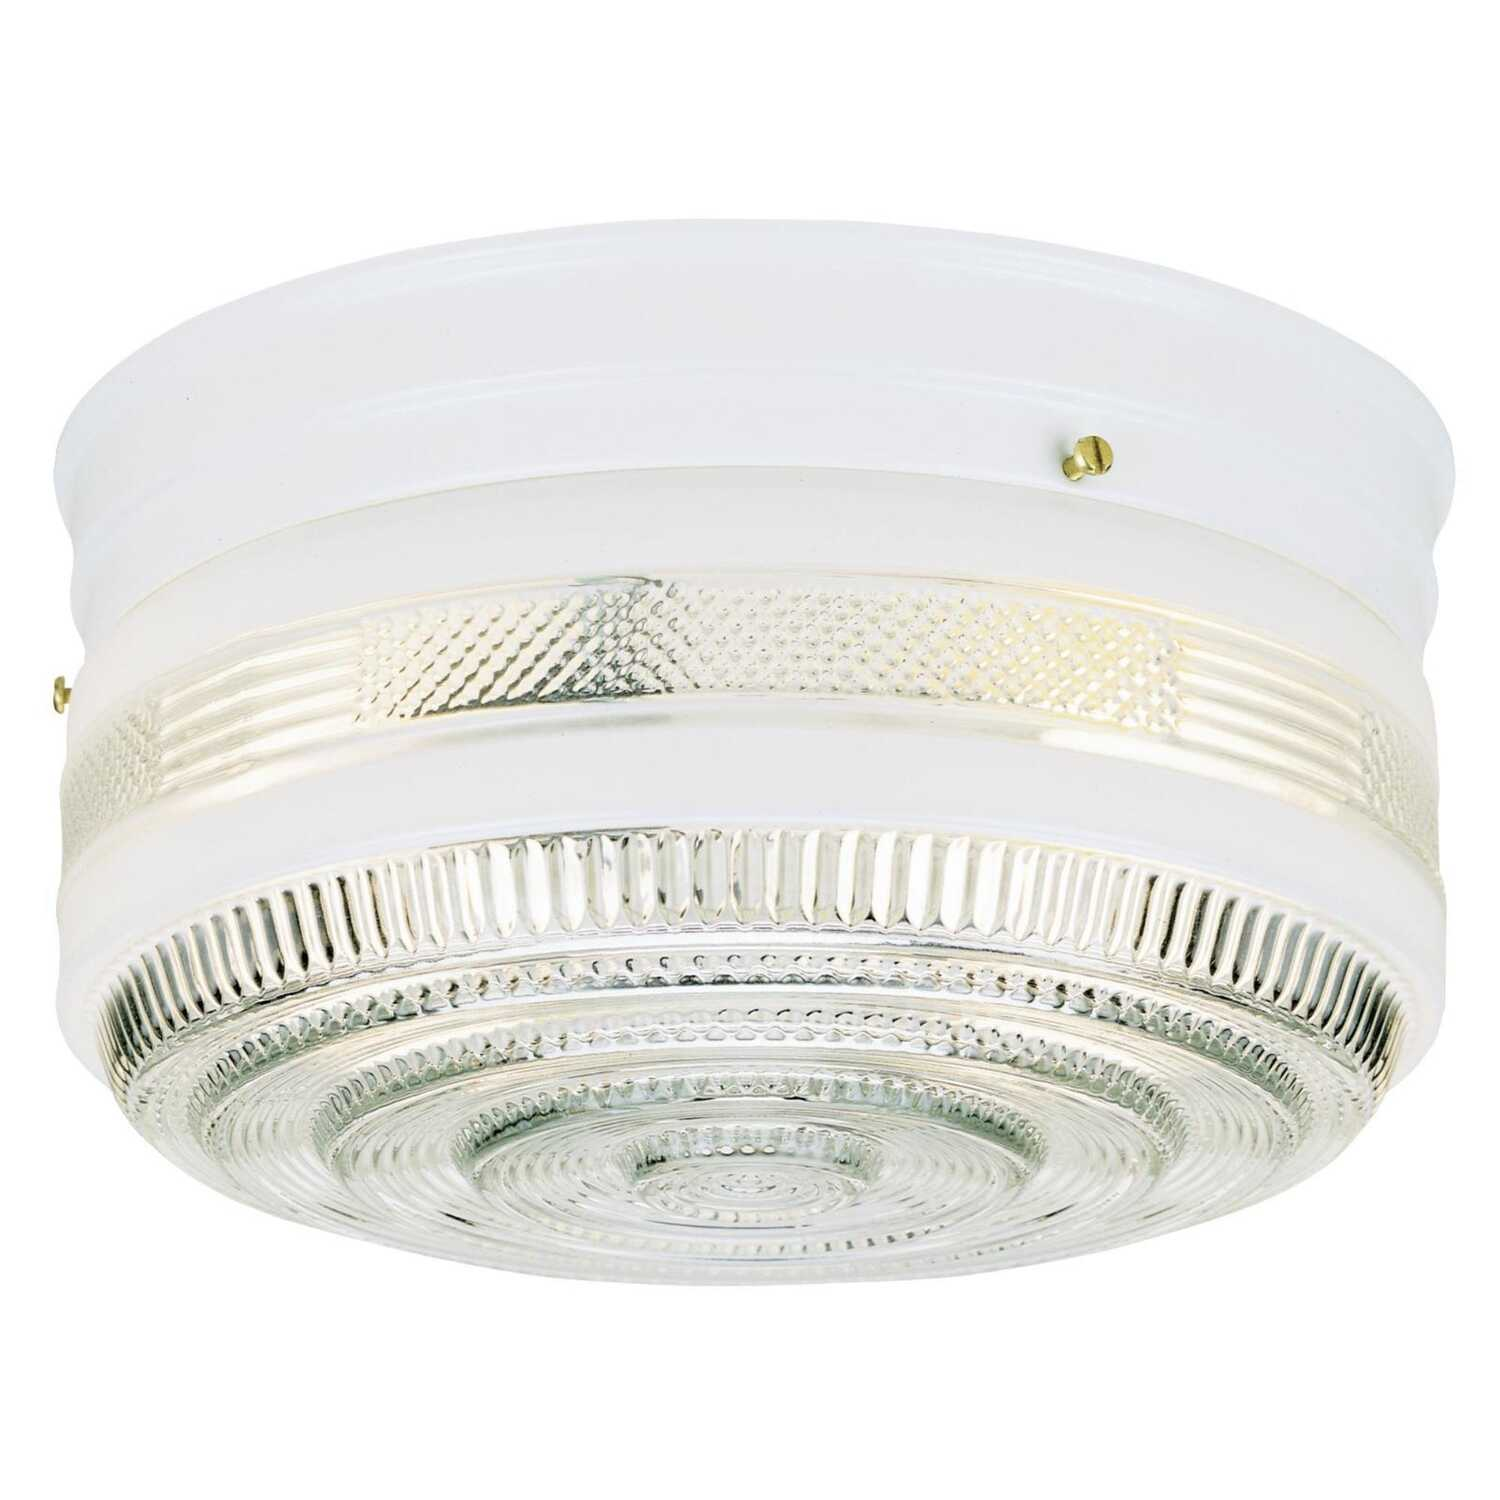 Westinghouse  10-3/4 in. W x 5-1/4 in. H x 10.75 in. L Ceiling Light